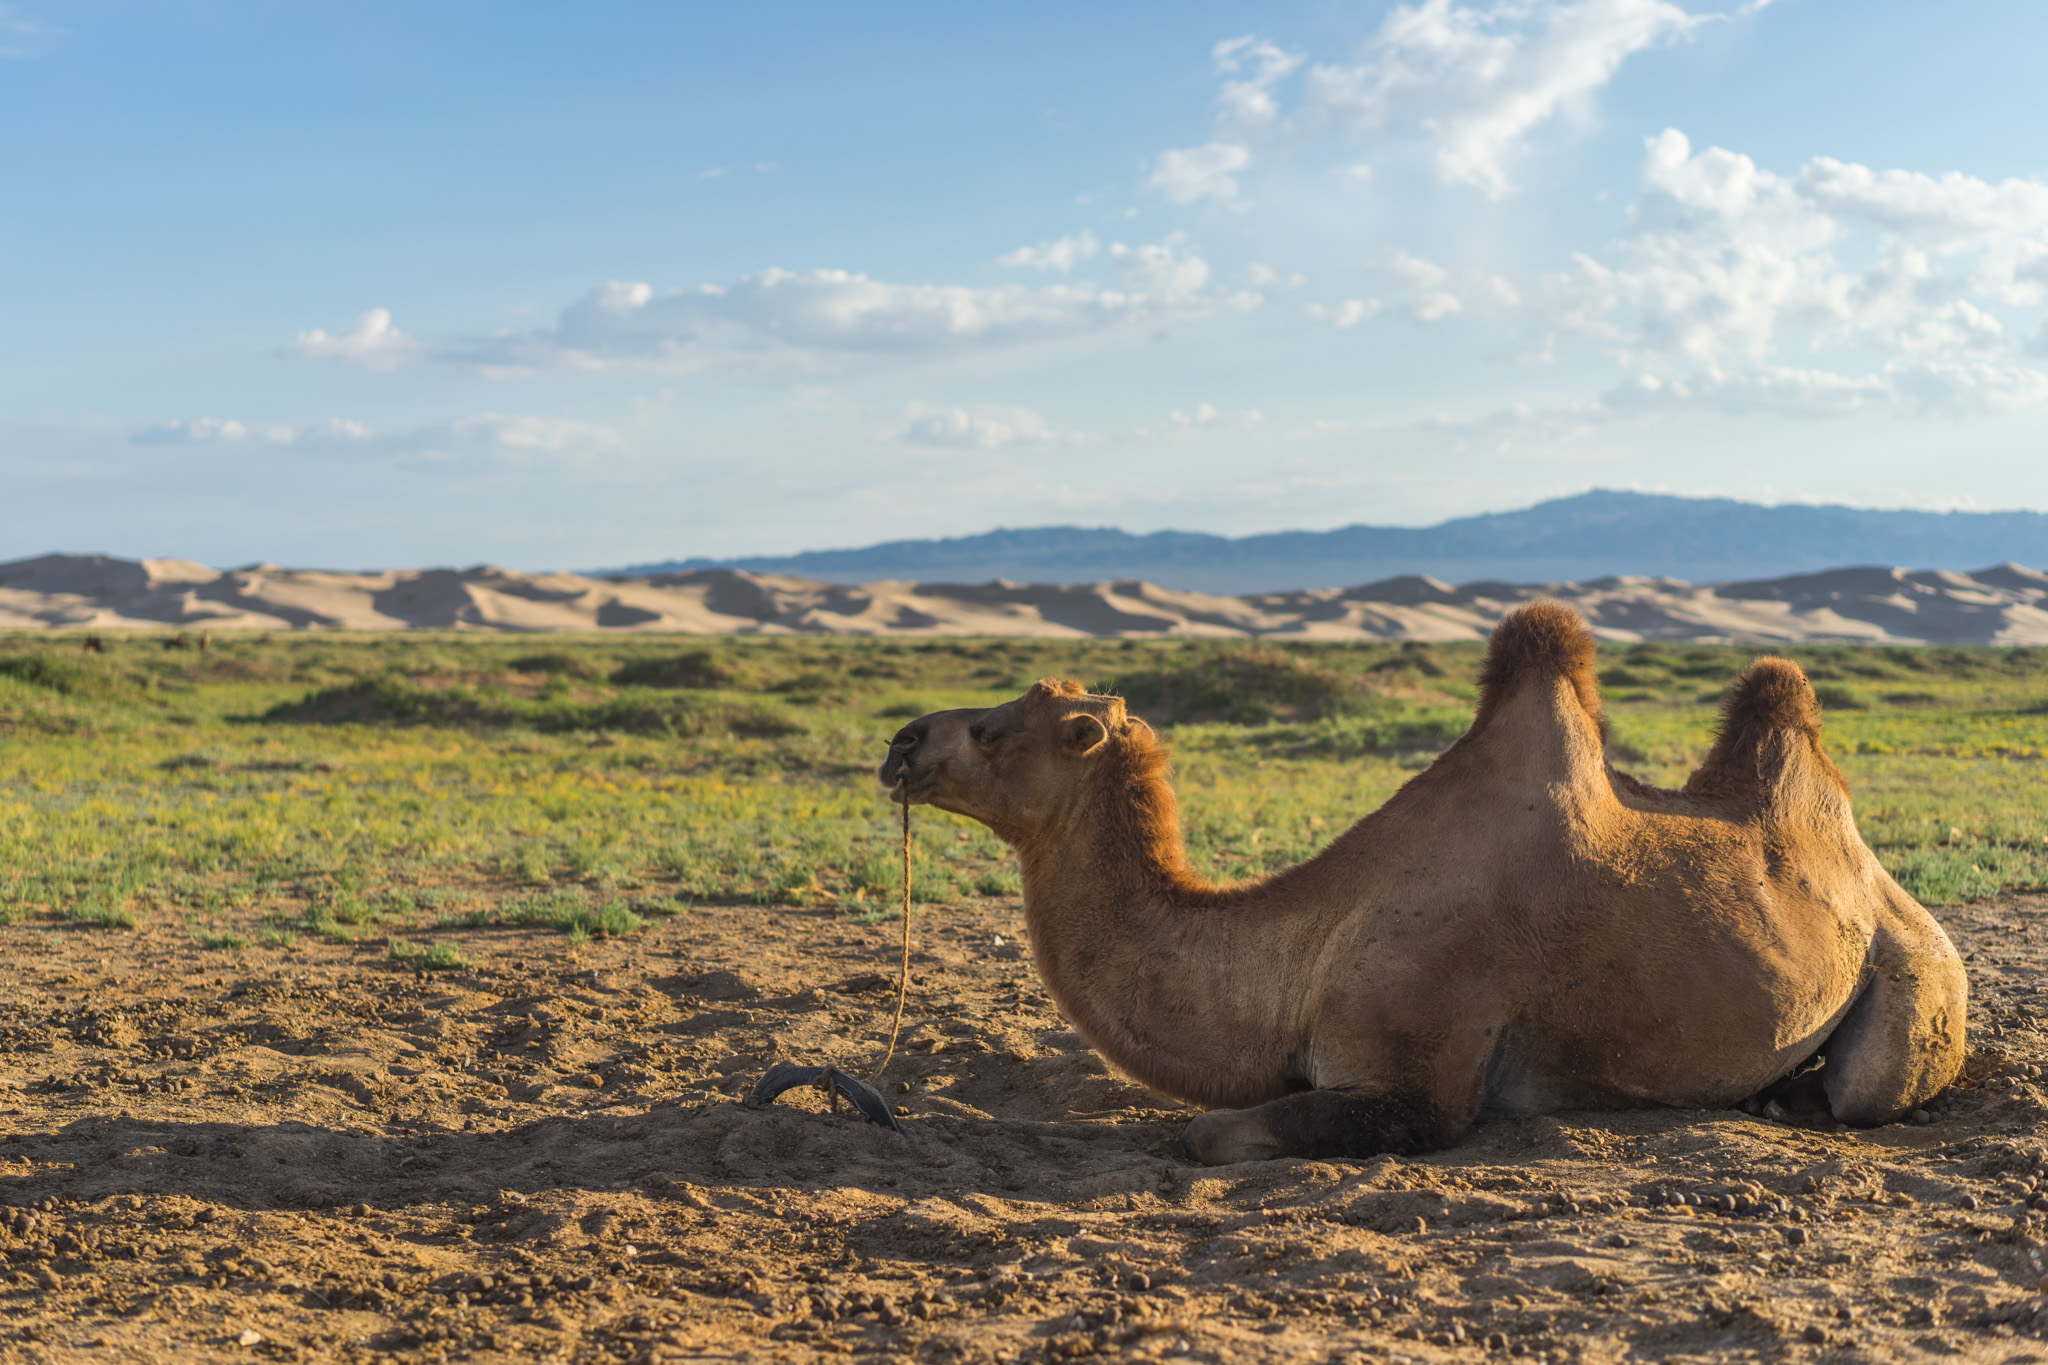 Camel chillin' in the Gobi Desert